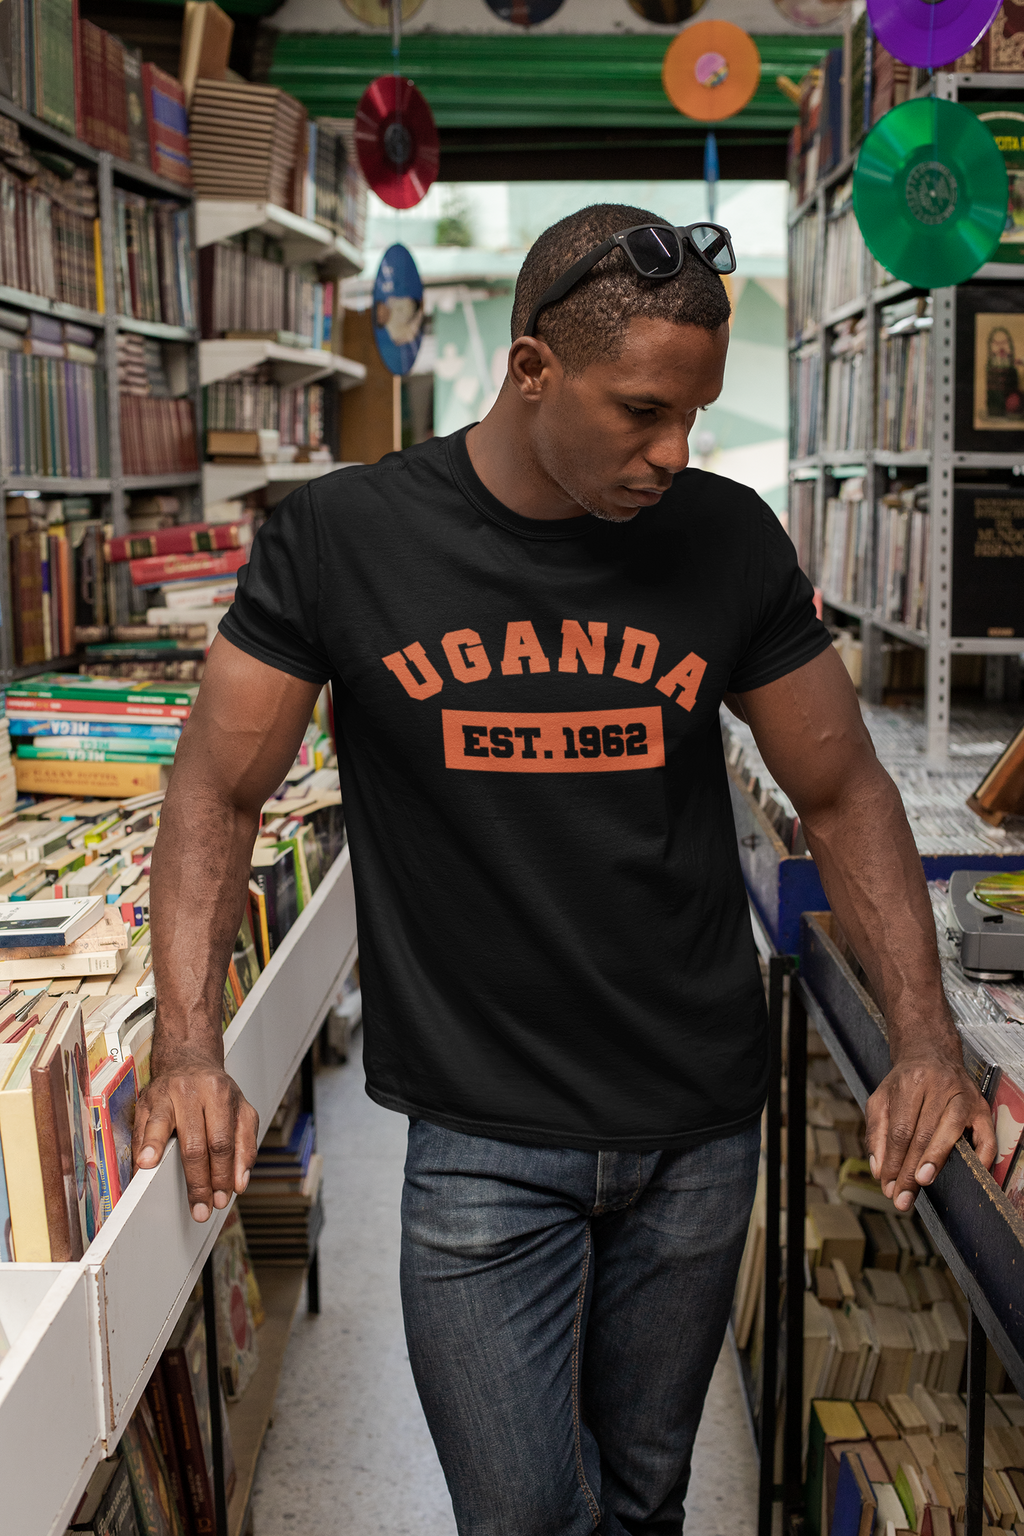 Uganda Est.1962 Organic Cotton T-Shirt